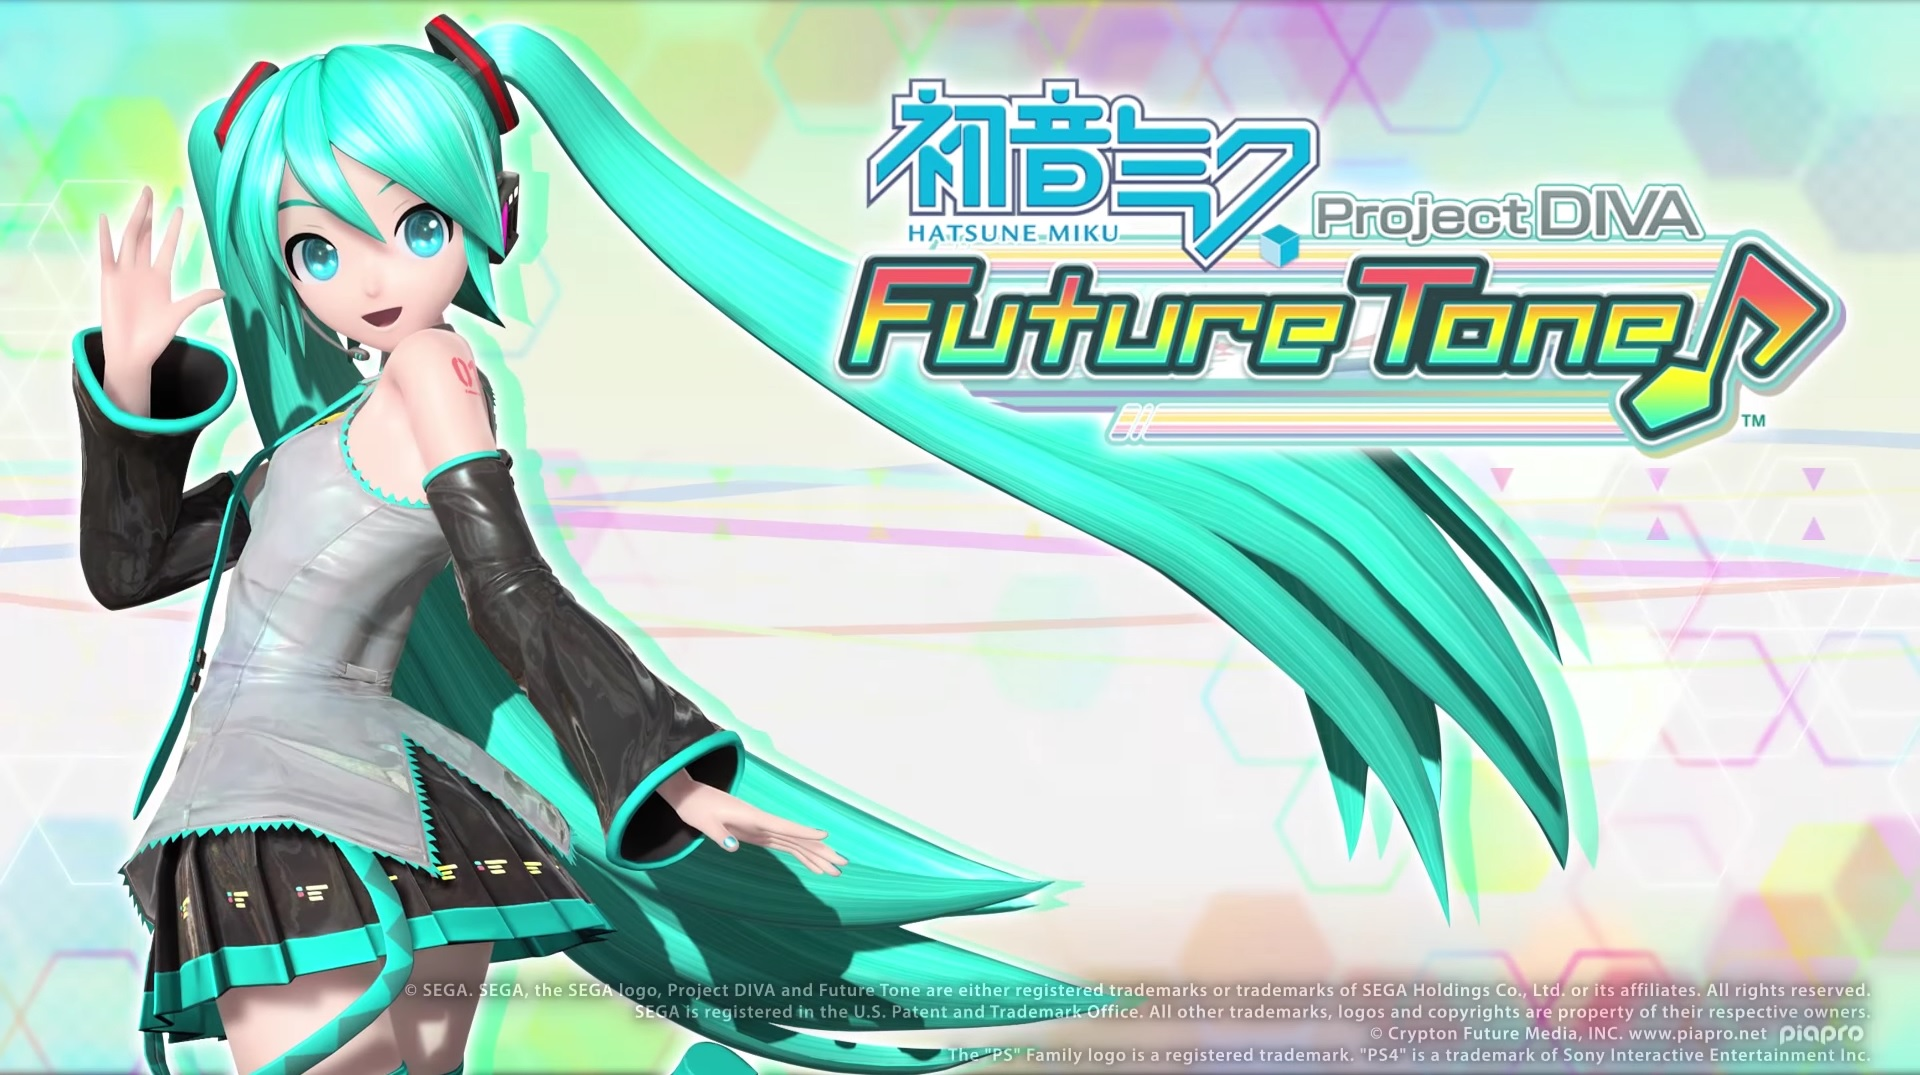 Hatsune miku project diva future tone review capsule computers - Hatsune miku project diva ...